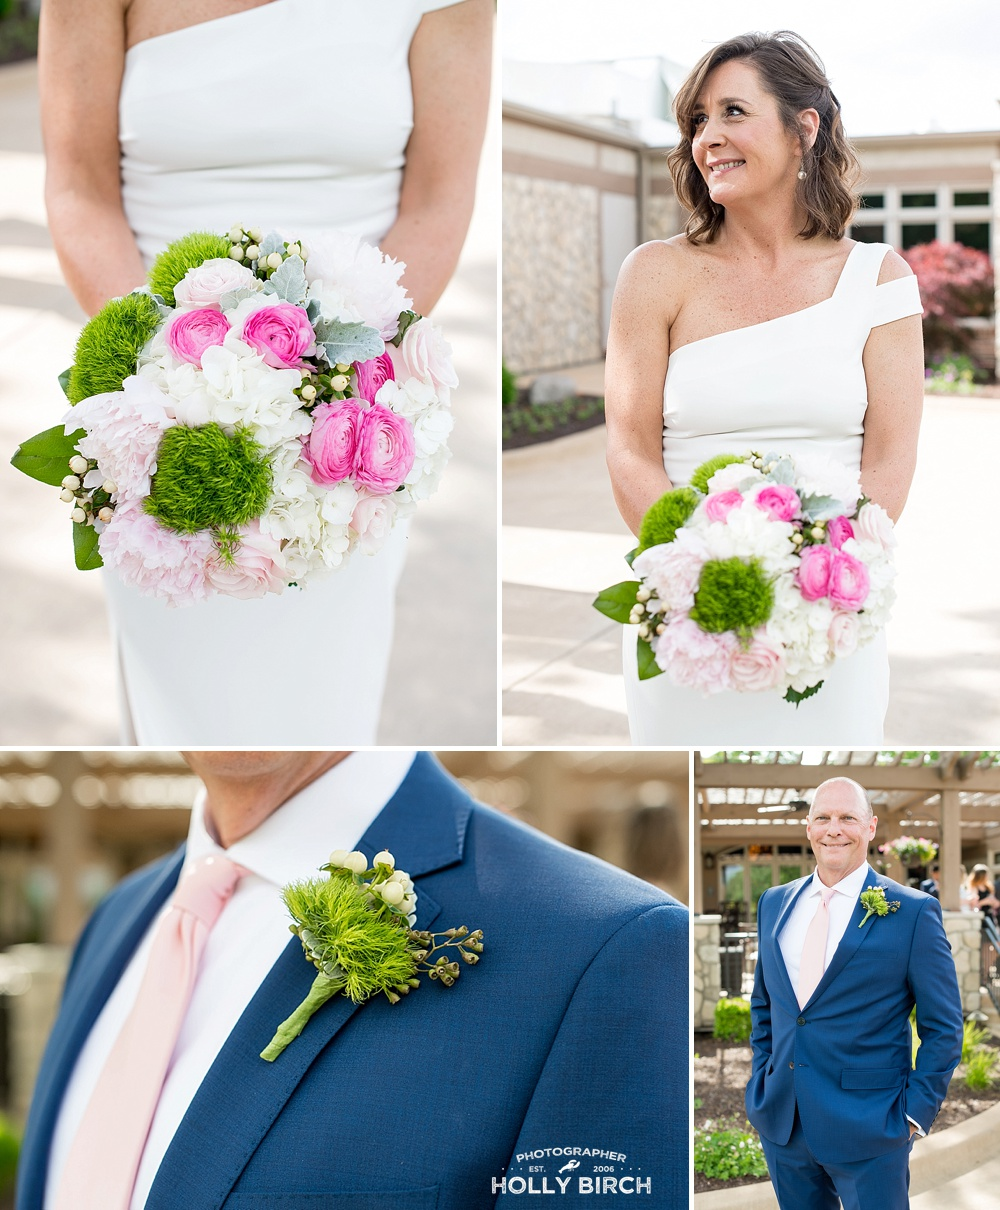 Beautiful pink and white bouquet with greenery